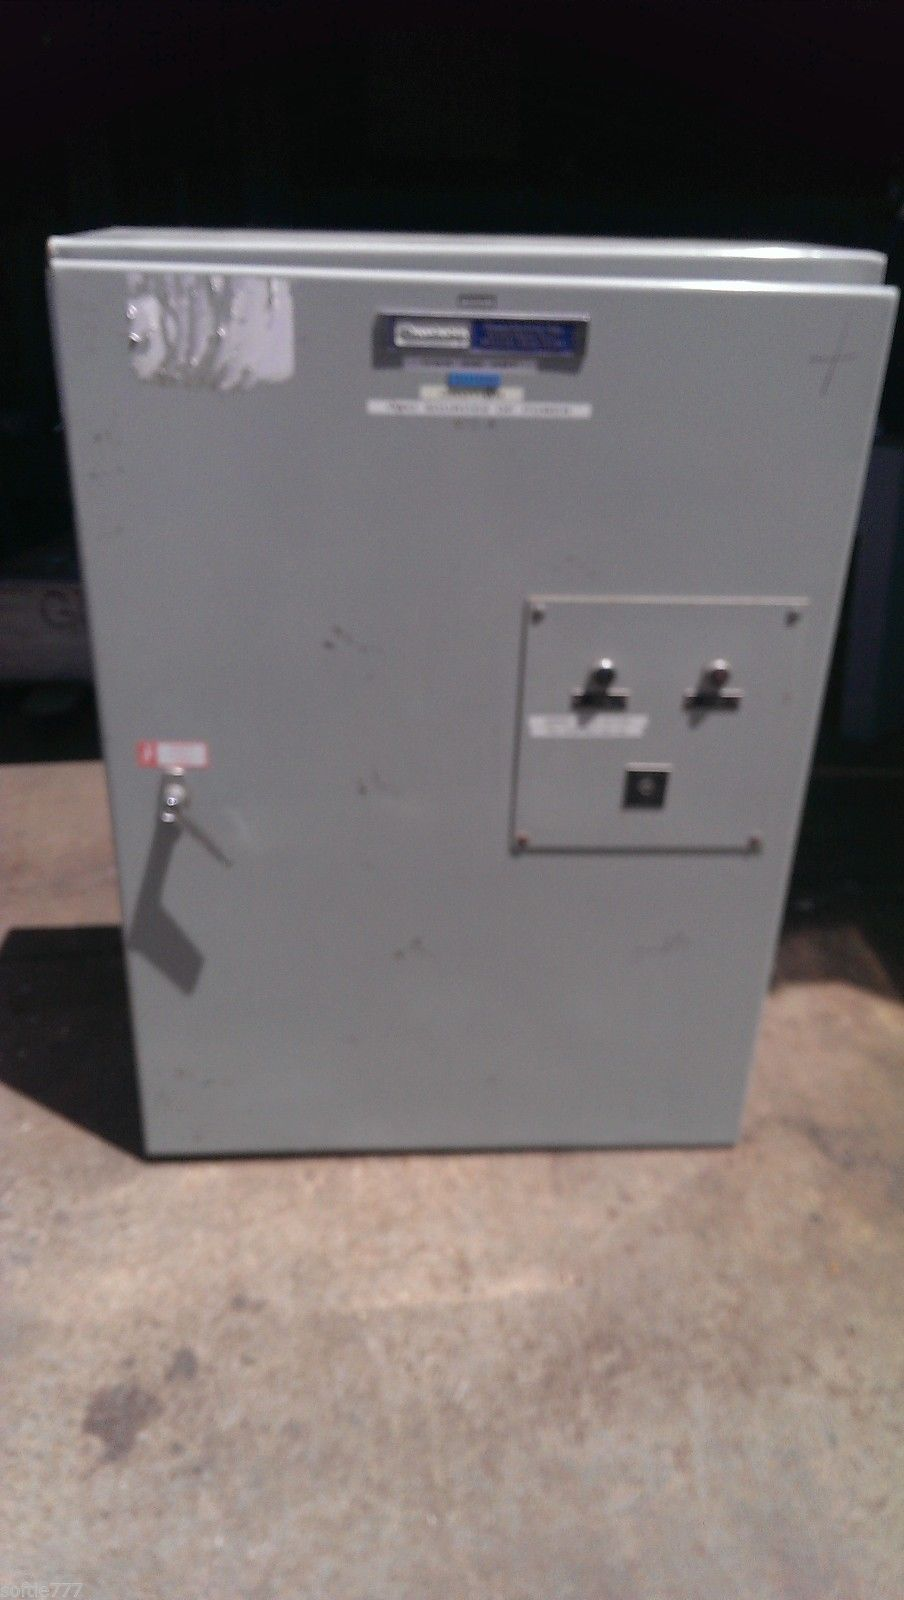 Russelectric 150 Amp Automatic Transfer Switch RMT-1503CE 3 Ph 3W